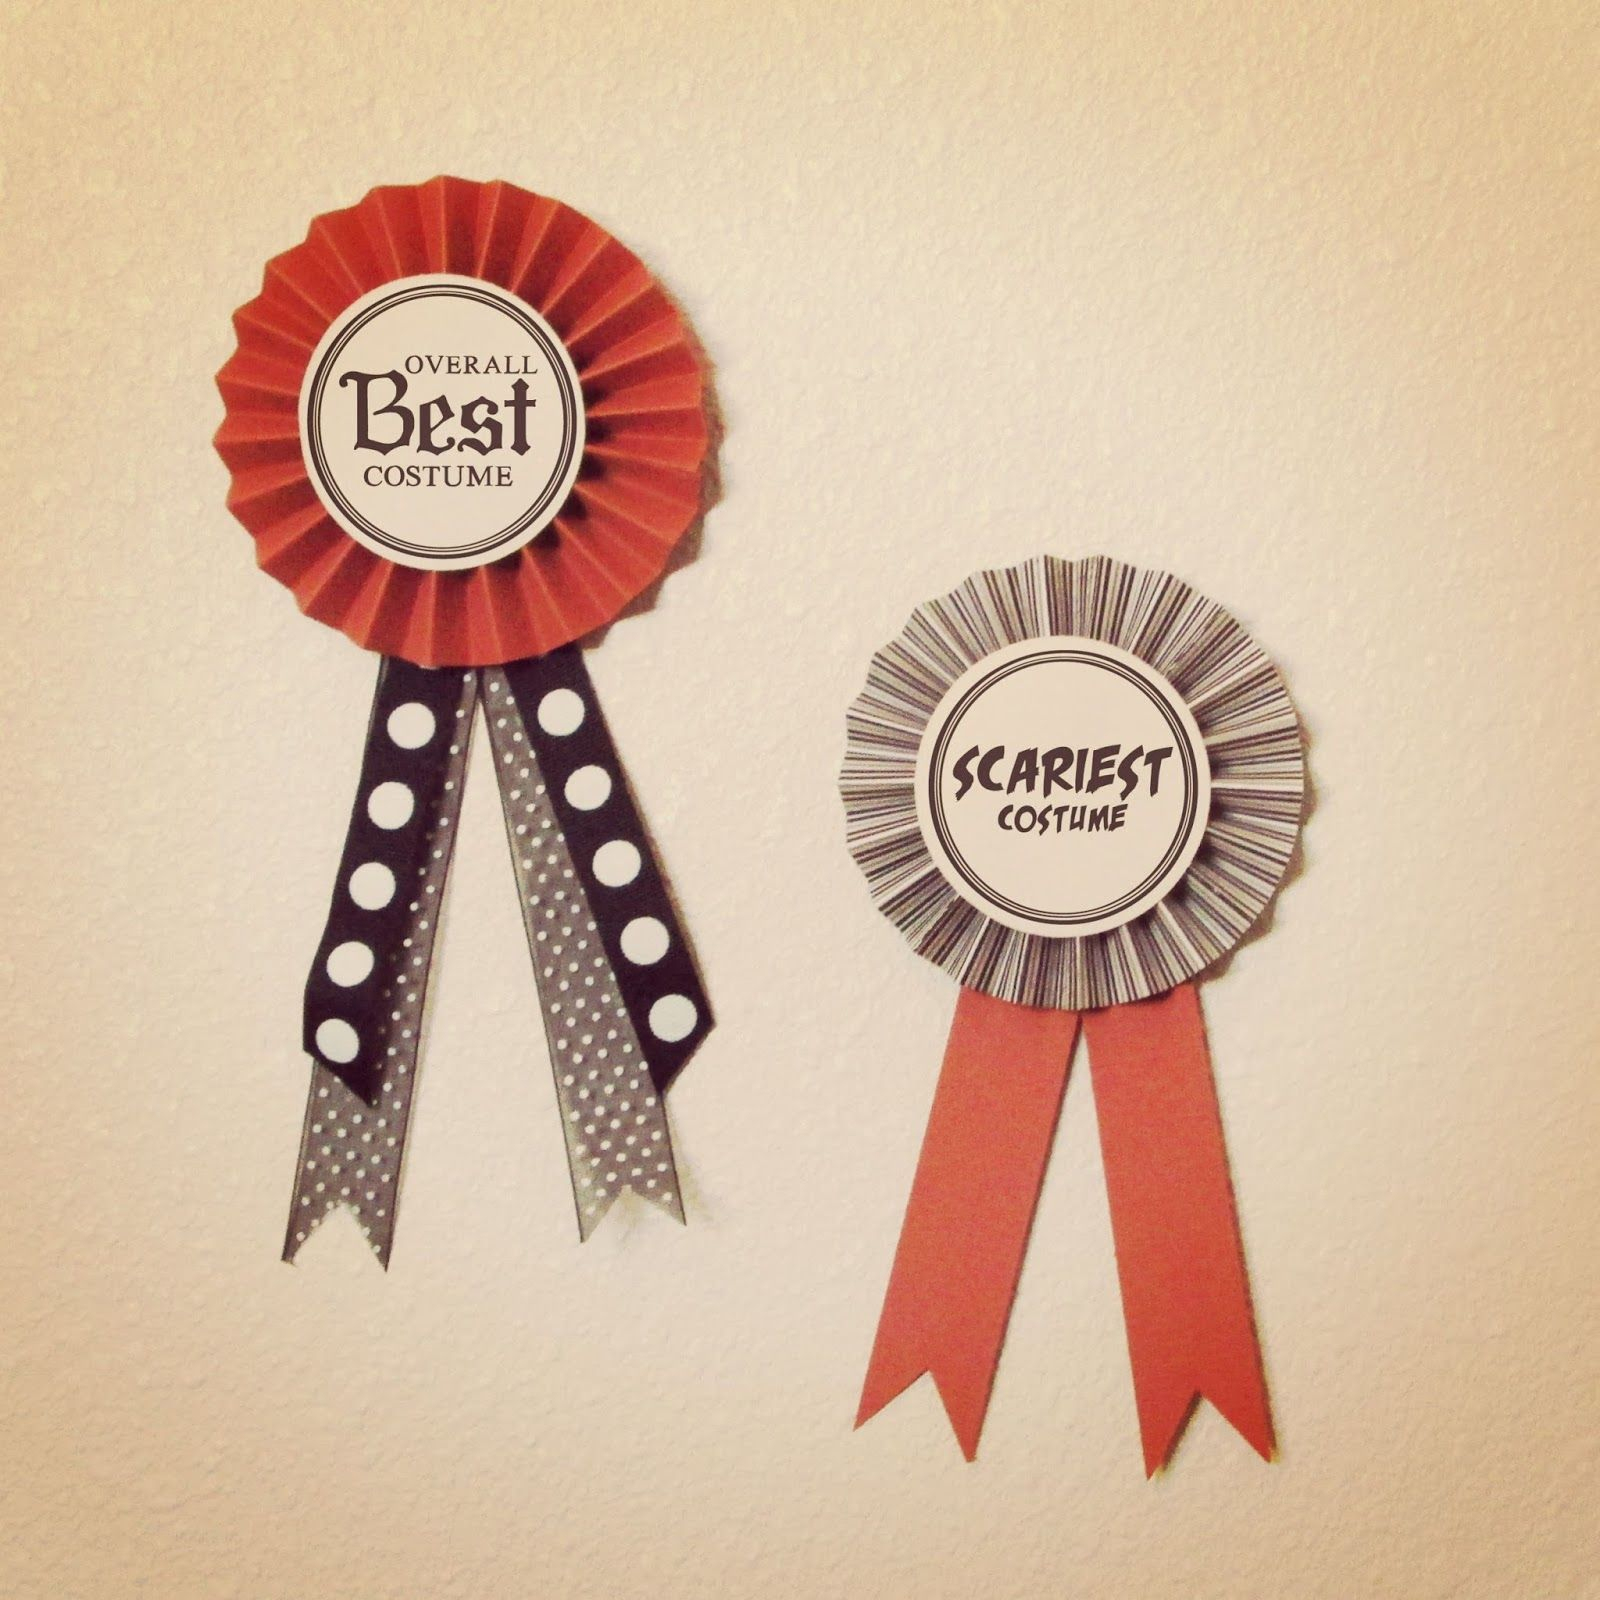 Free Printable Halloween Costume Contest Awards | - Fontaholic - Free Printable Halloween Award Certificates